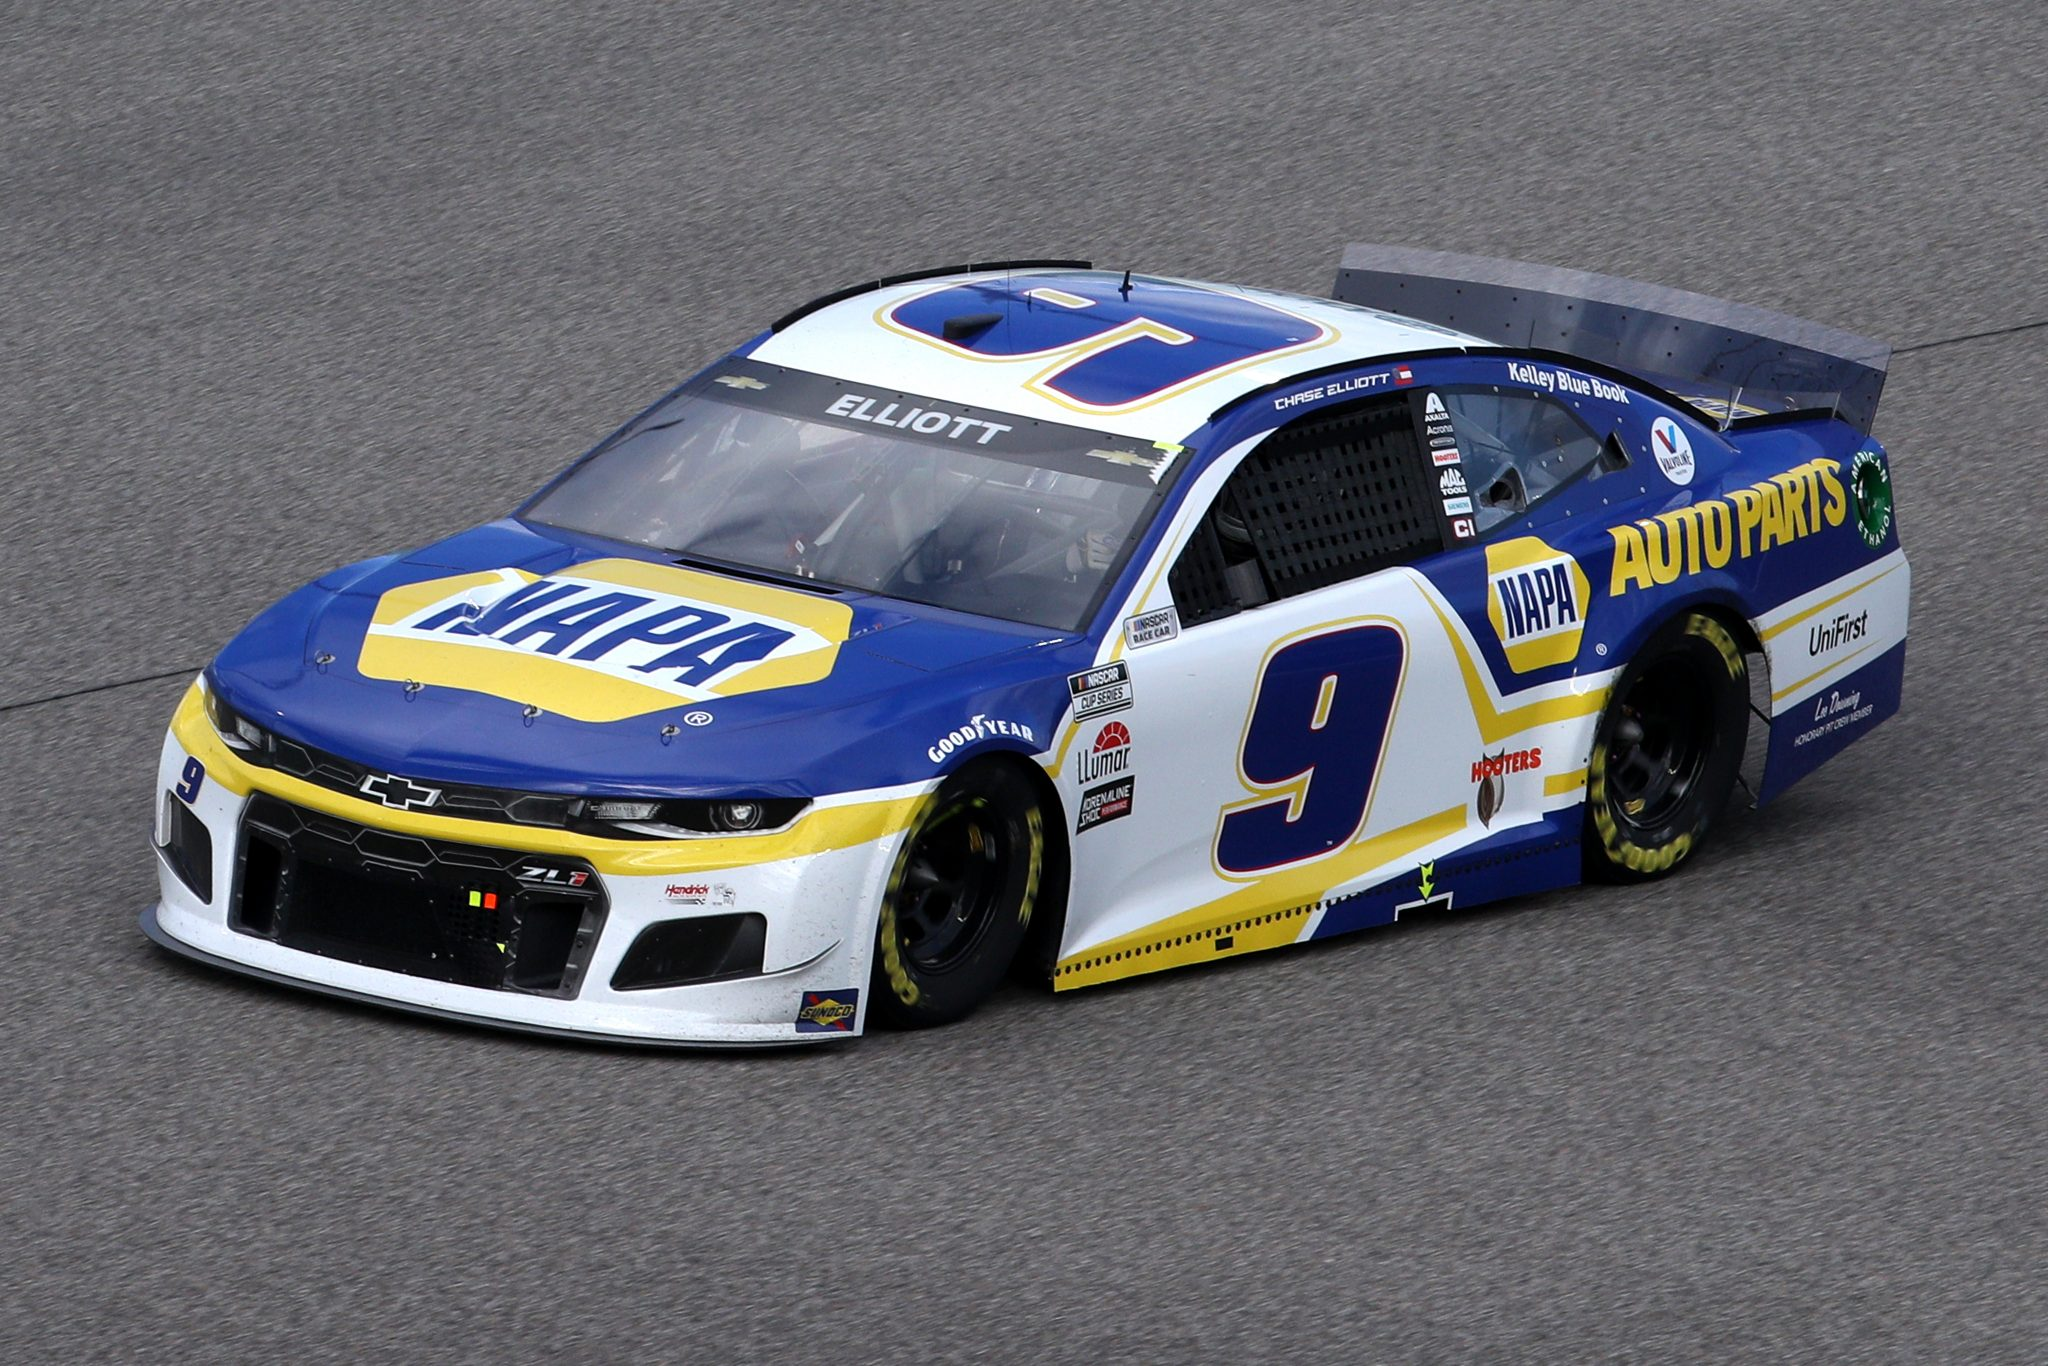 HOMESTEAD, FLORIDA - FEBRUARY 28: Chase Elliott, driver of the #9 NAPA Auto Parts Chevrolet, drives during the NASCAR Cup Series Dixie Vodka 400 at Homestead-Miami Speedway on February 28, 2021 in Homestead, Florida. (Photo by Sean Gardner/Getty Images) | Getty Images